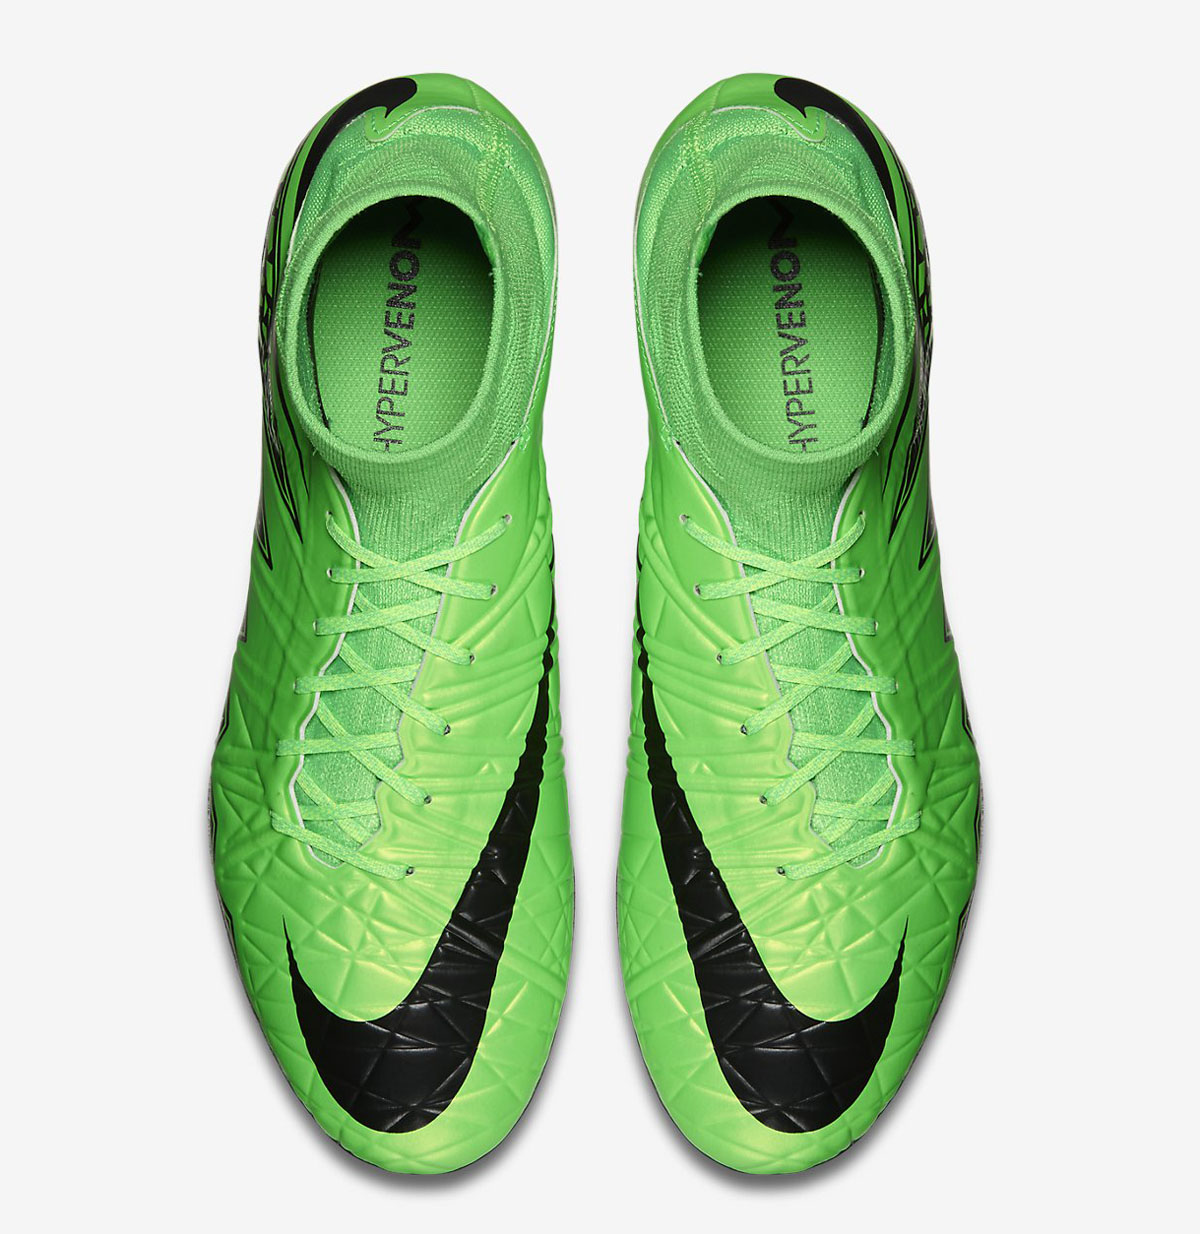 sneakers for cheap 80143 d4245 ... promo code nike hypervenom phatal ii fg green strike black 7da52 920b3